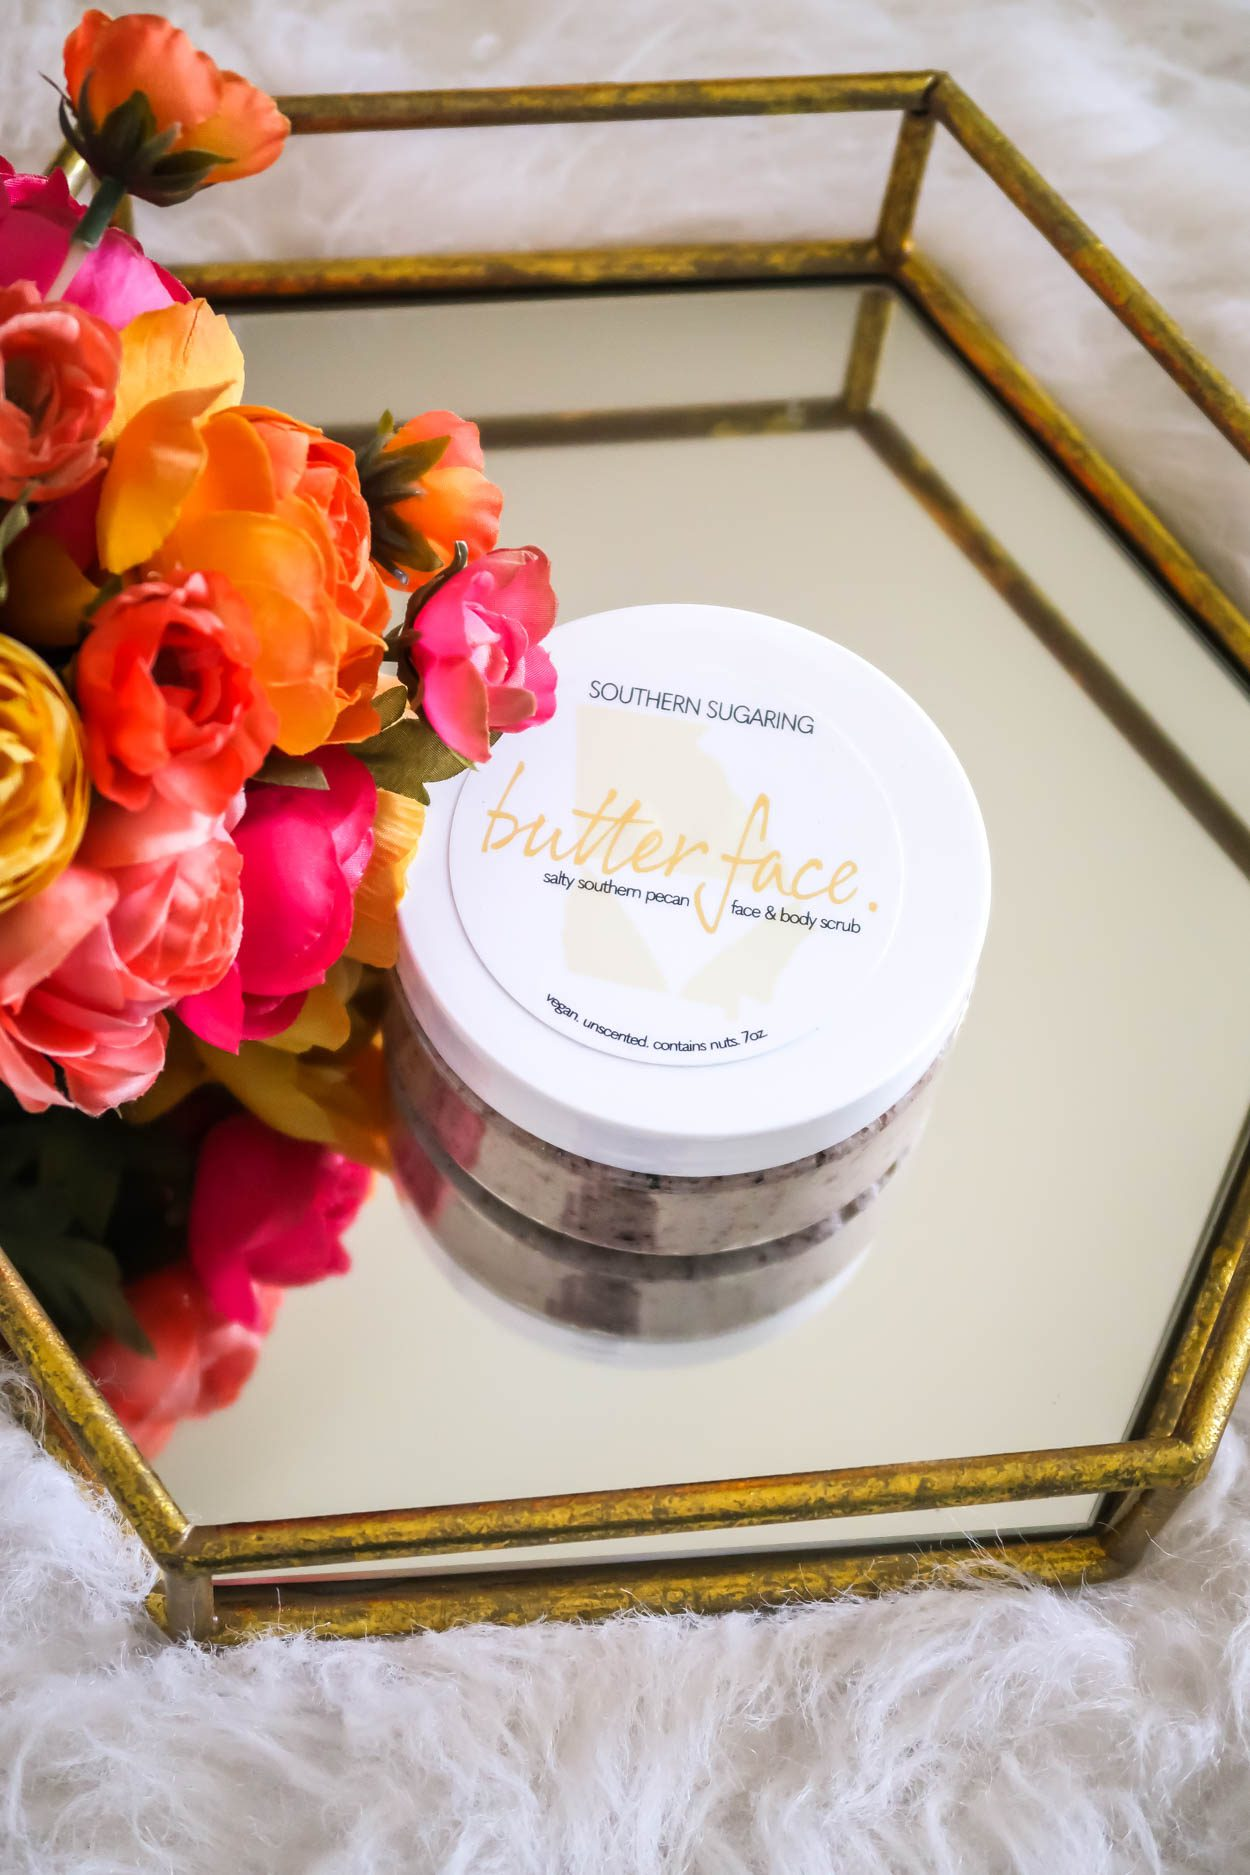 Southern Sugaring Salty Southern Pecan Face and Body Scrub is a new skincare product being released by, Southern Sugaring, a Sugaring Boutique located in Savannah, GA.